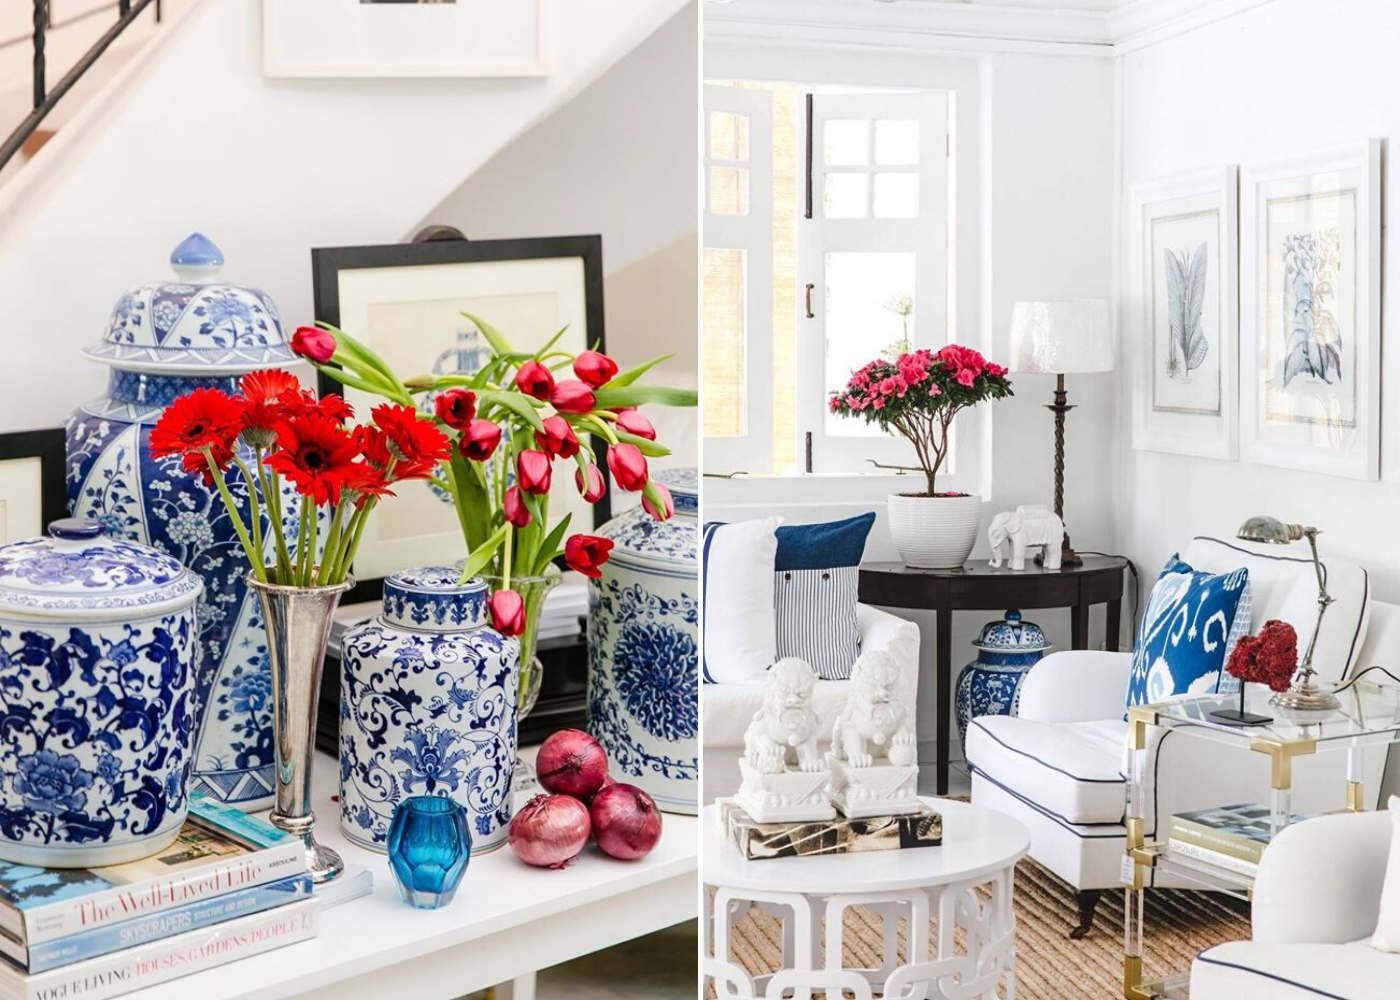 Blue & white delight: Chinoiserie style for a touch of chic at home